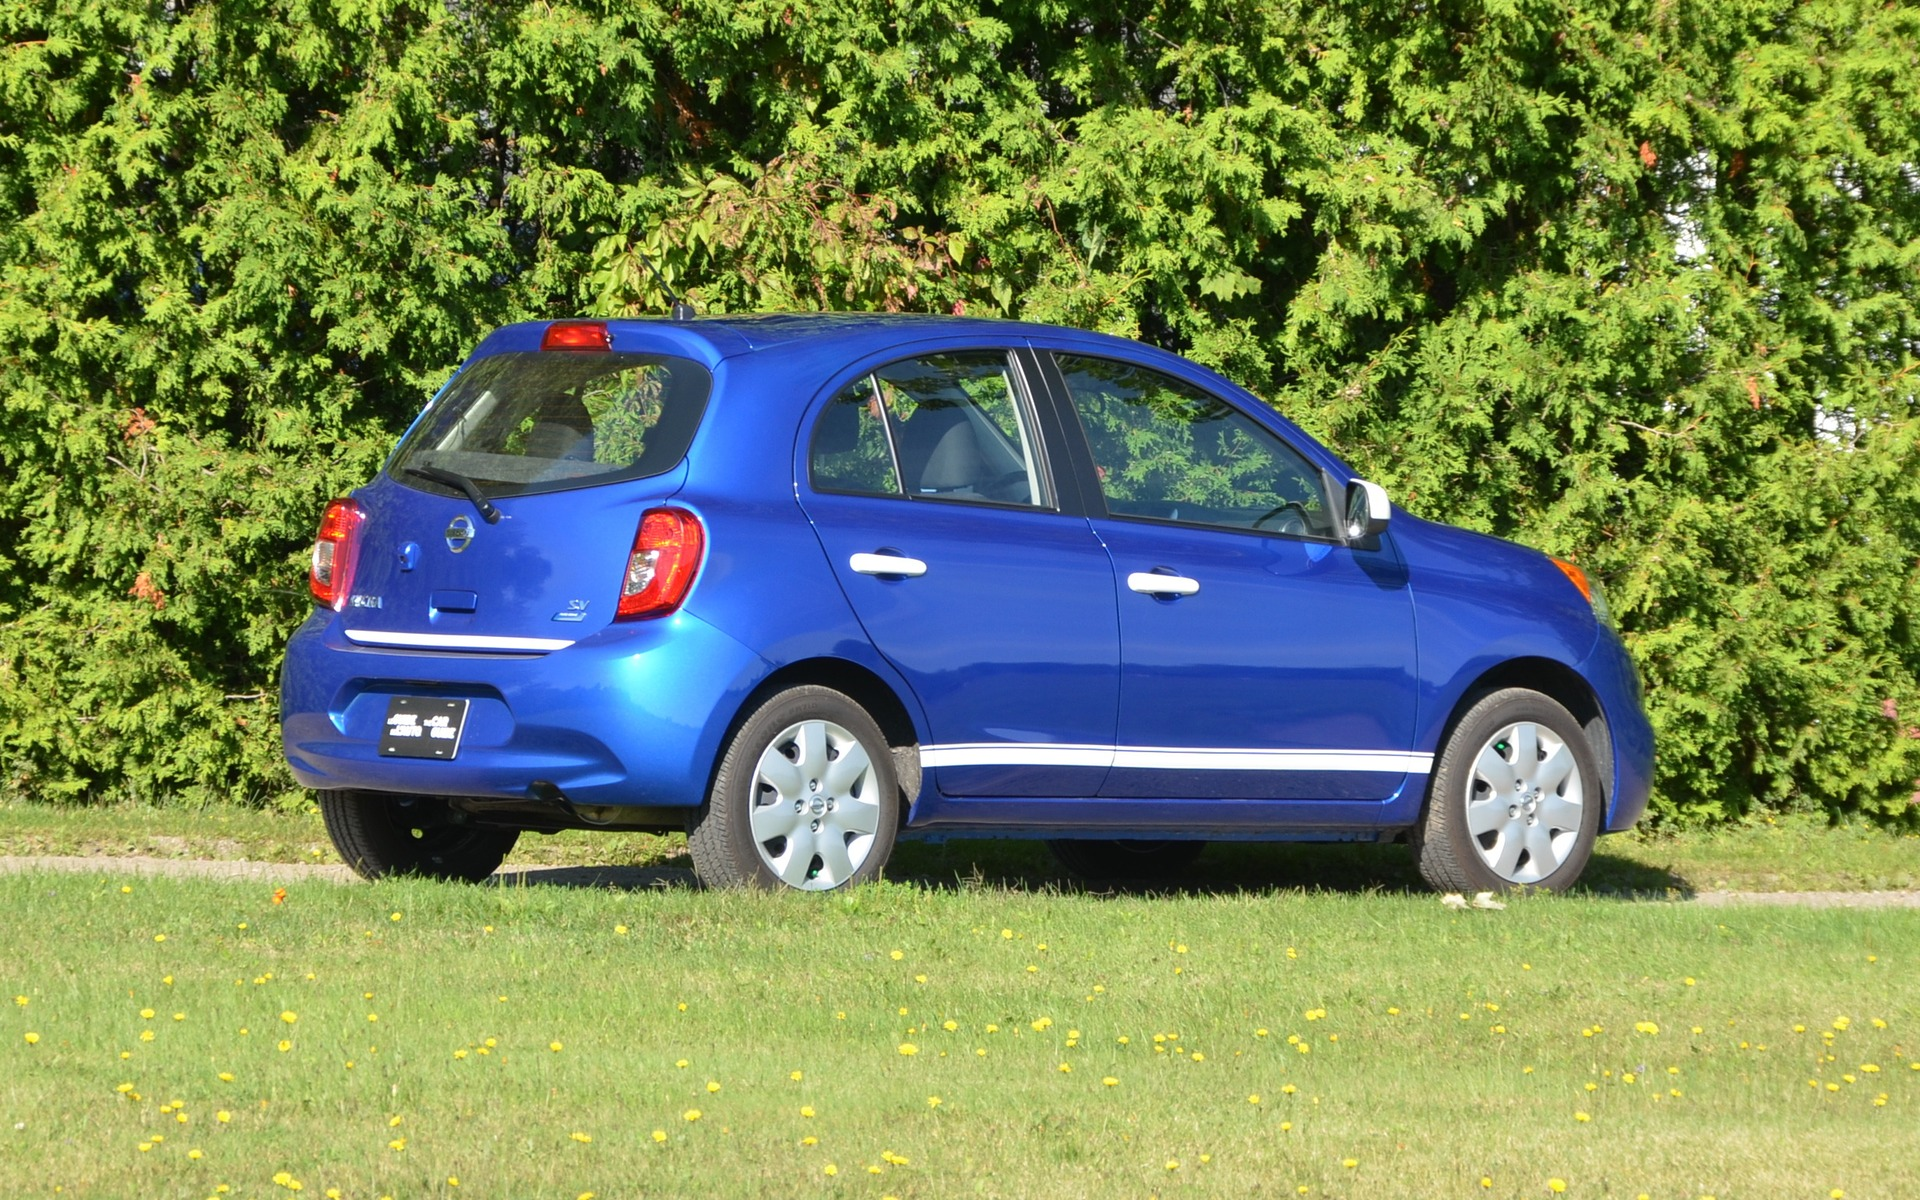 The Micra is actually quite decent looking, isn't it?